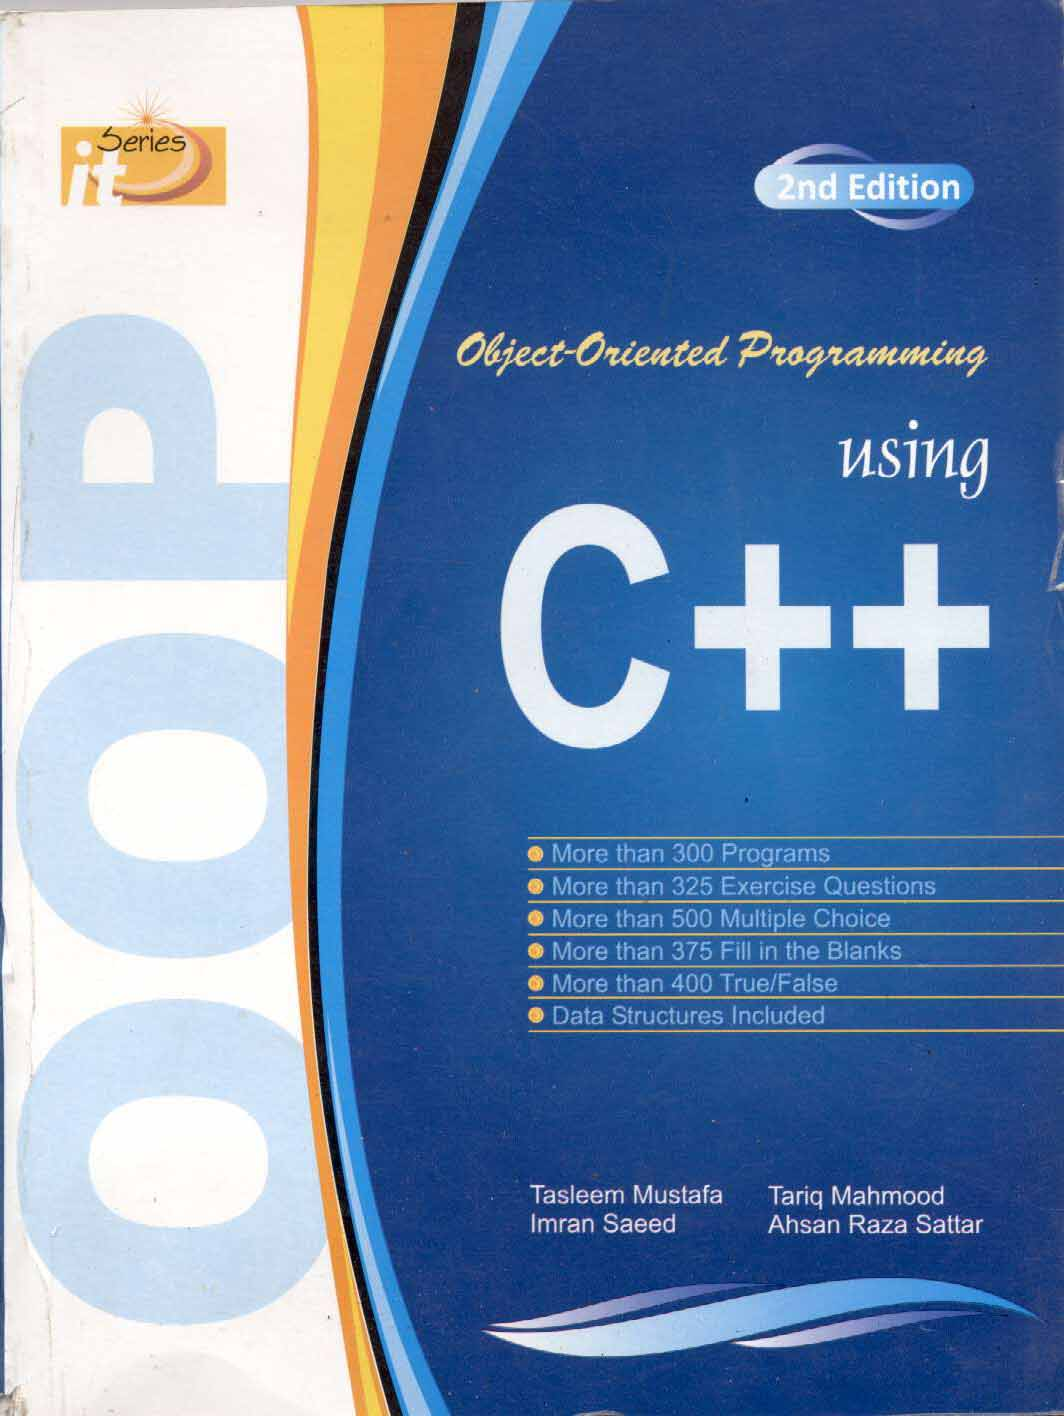 Object Oriented Programming (OOP) using C++